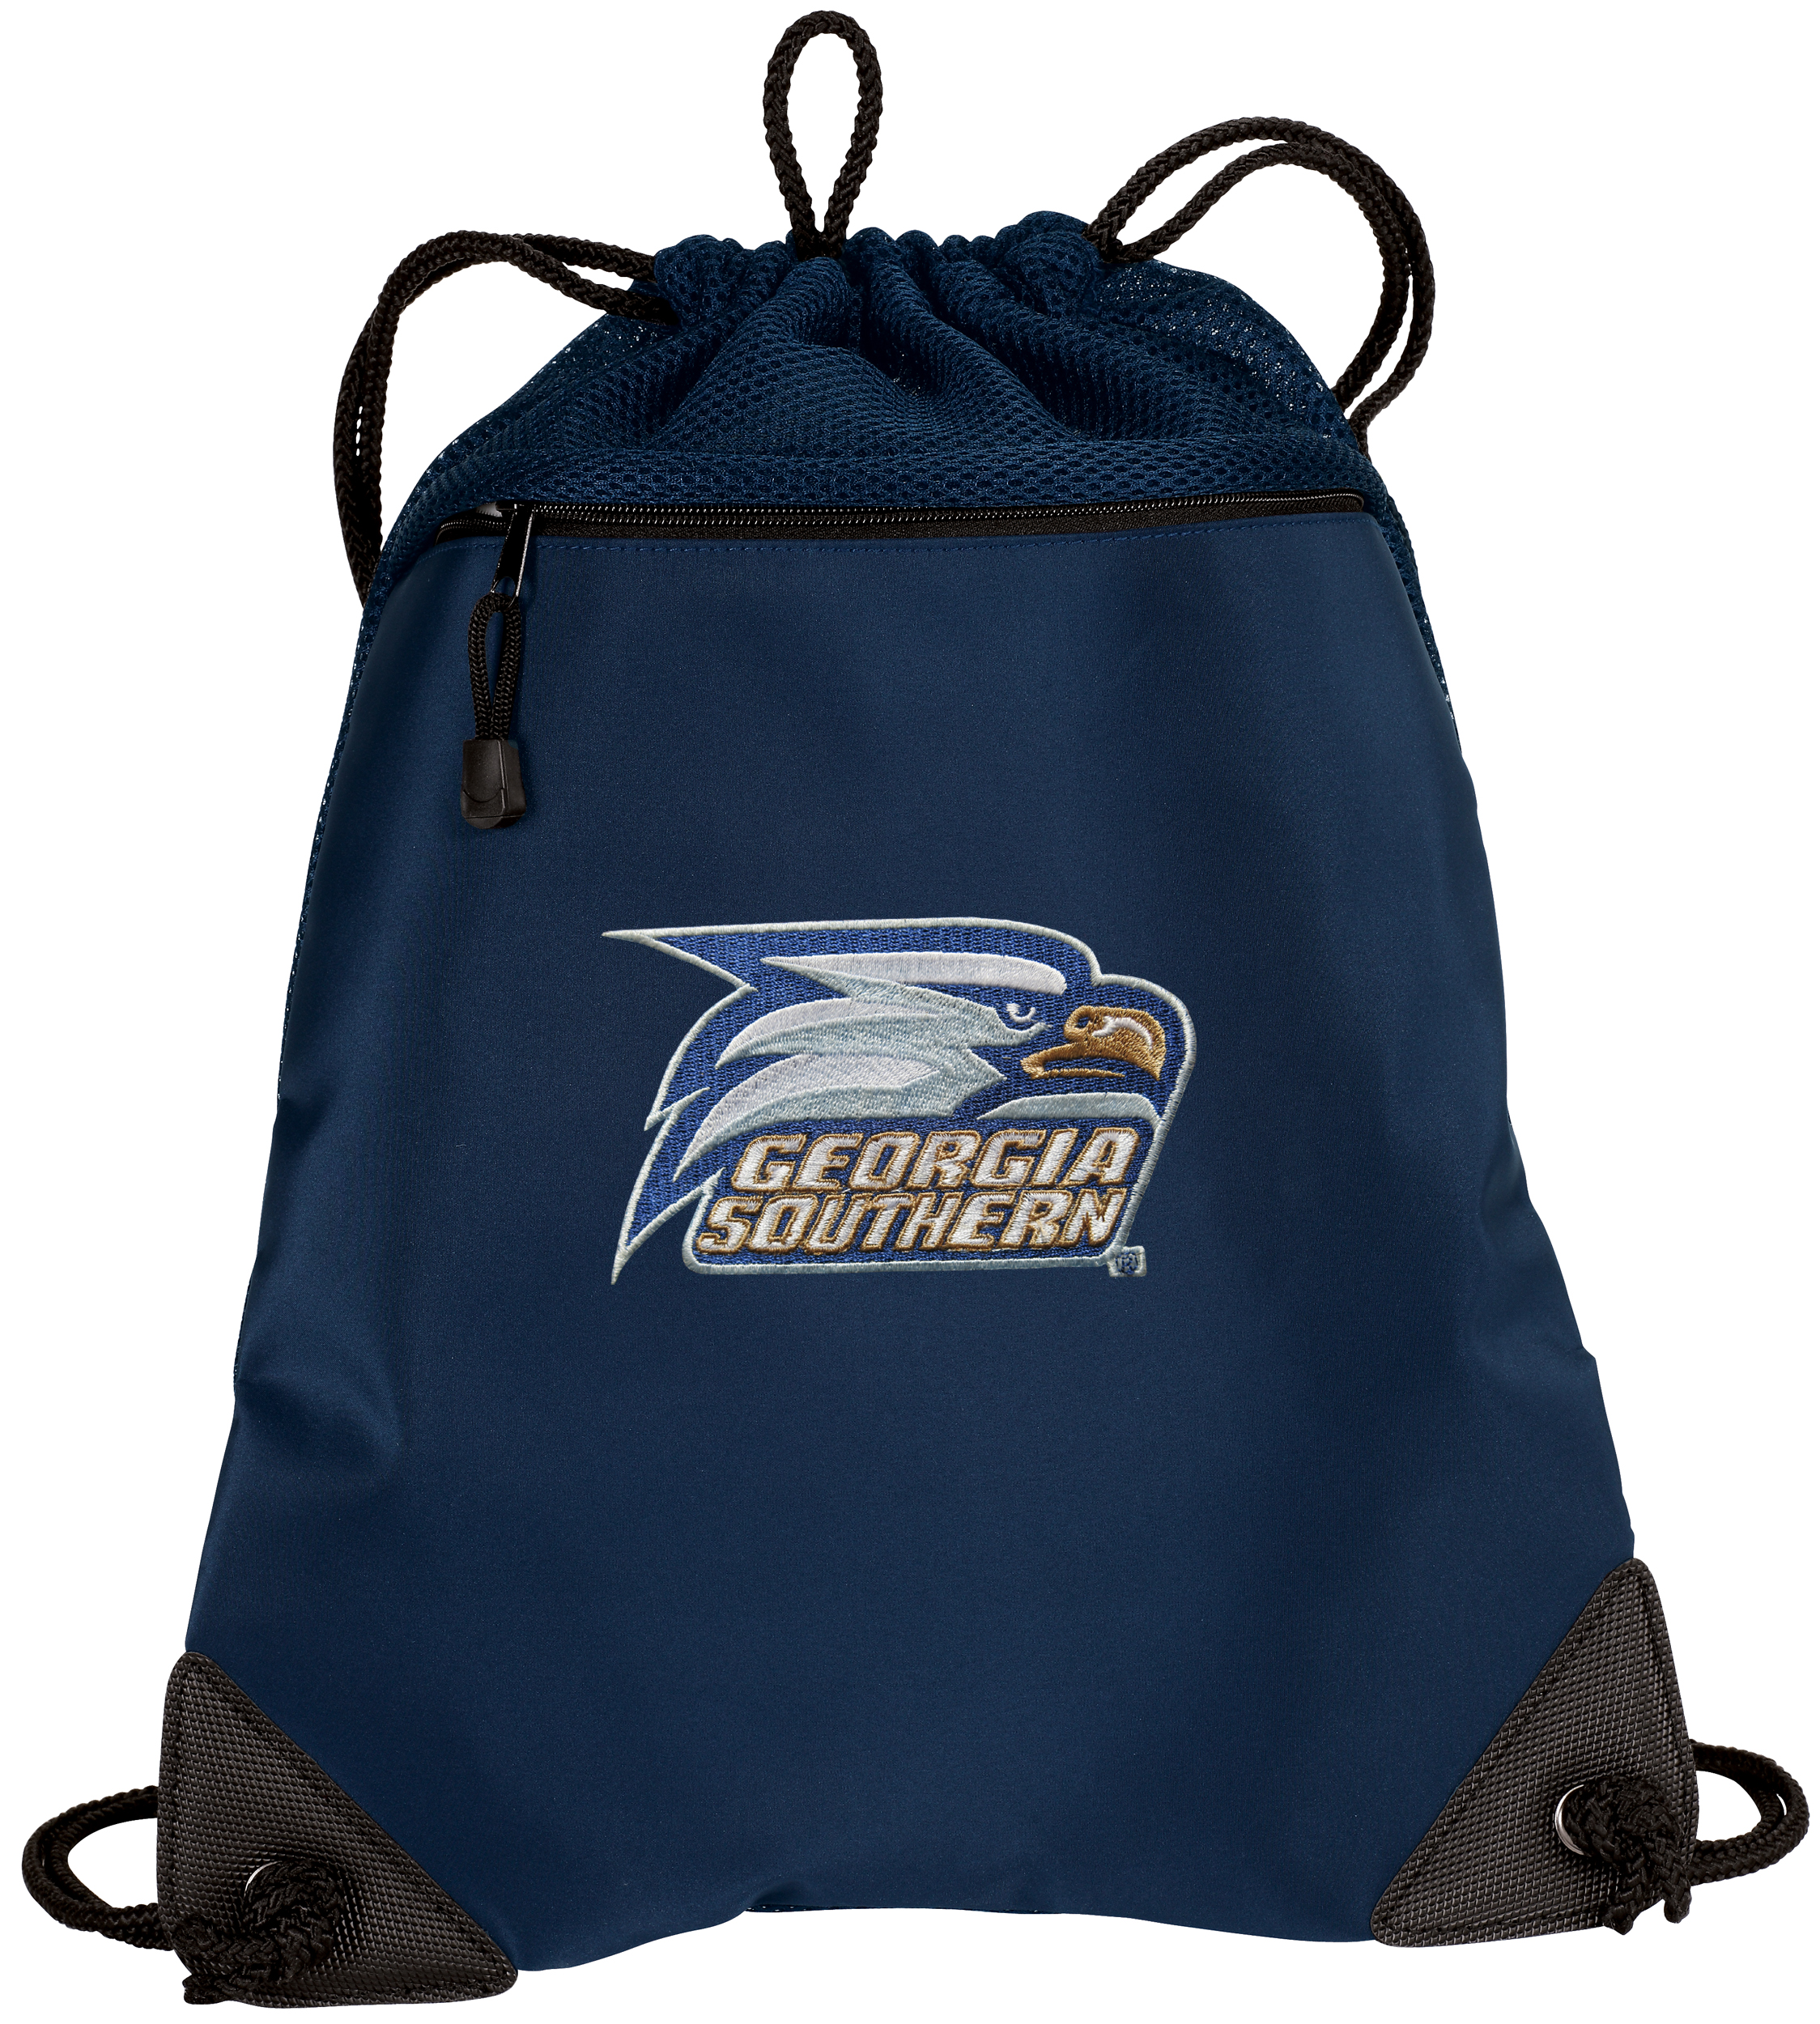 Georgia Southern Cinch Pack Backpack TWO SECTION Georgia Southern Eagles Drawstring Bag with Unique Mesh & Microfiber Sections